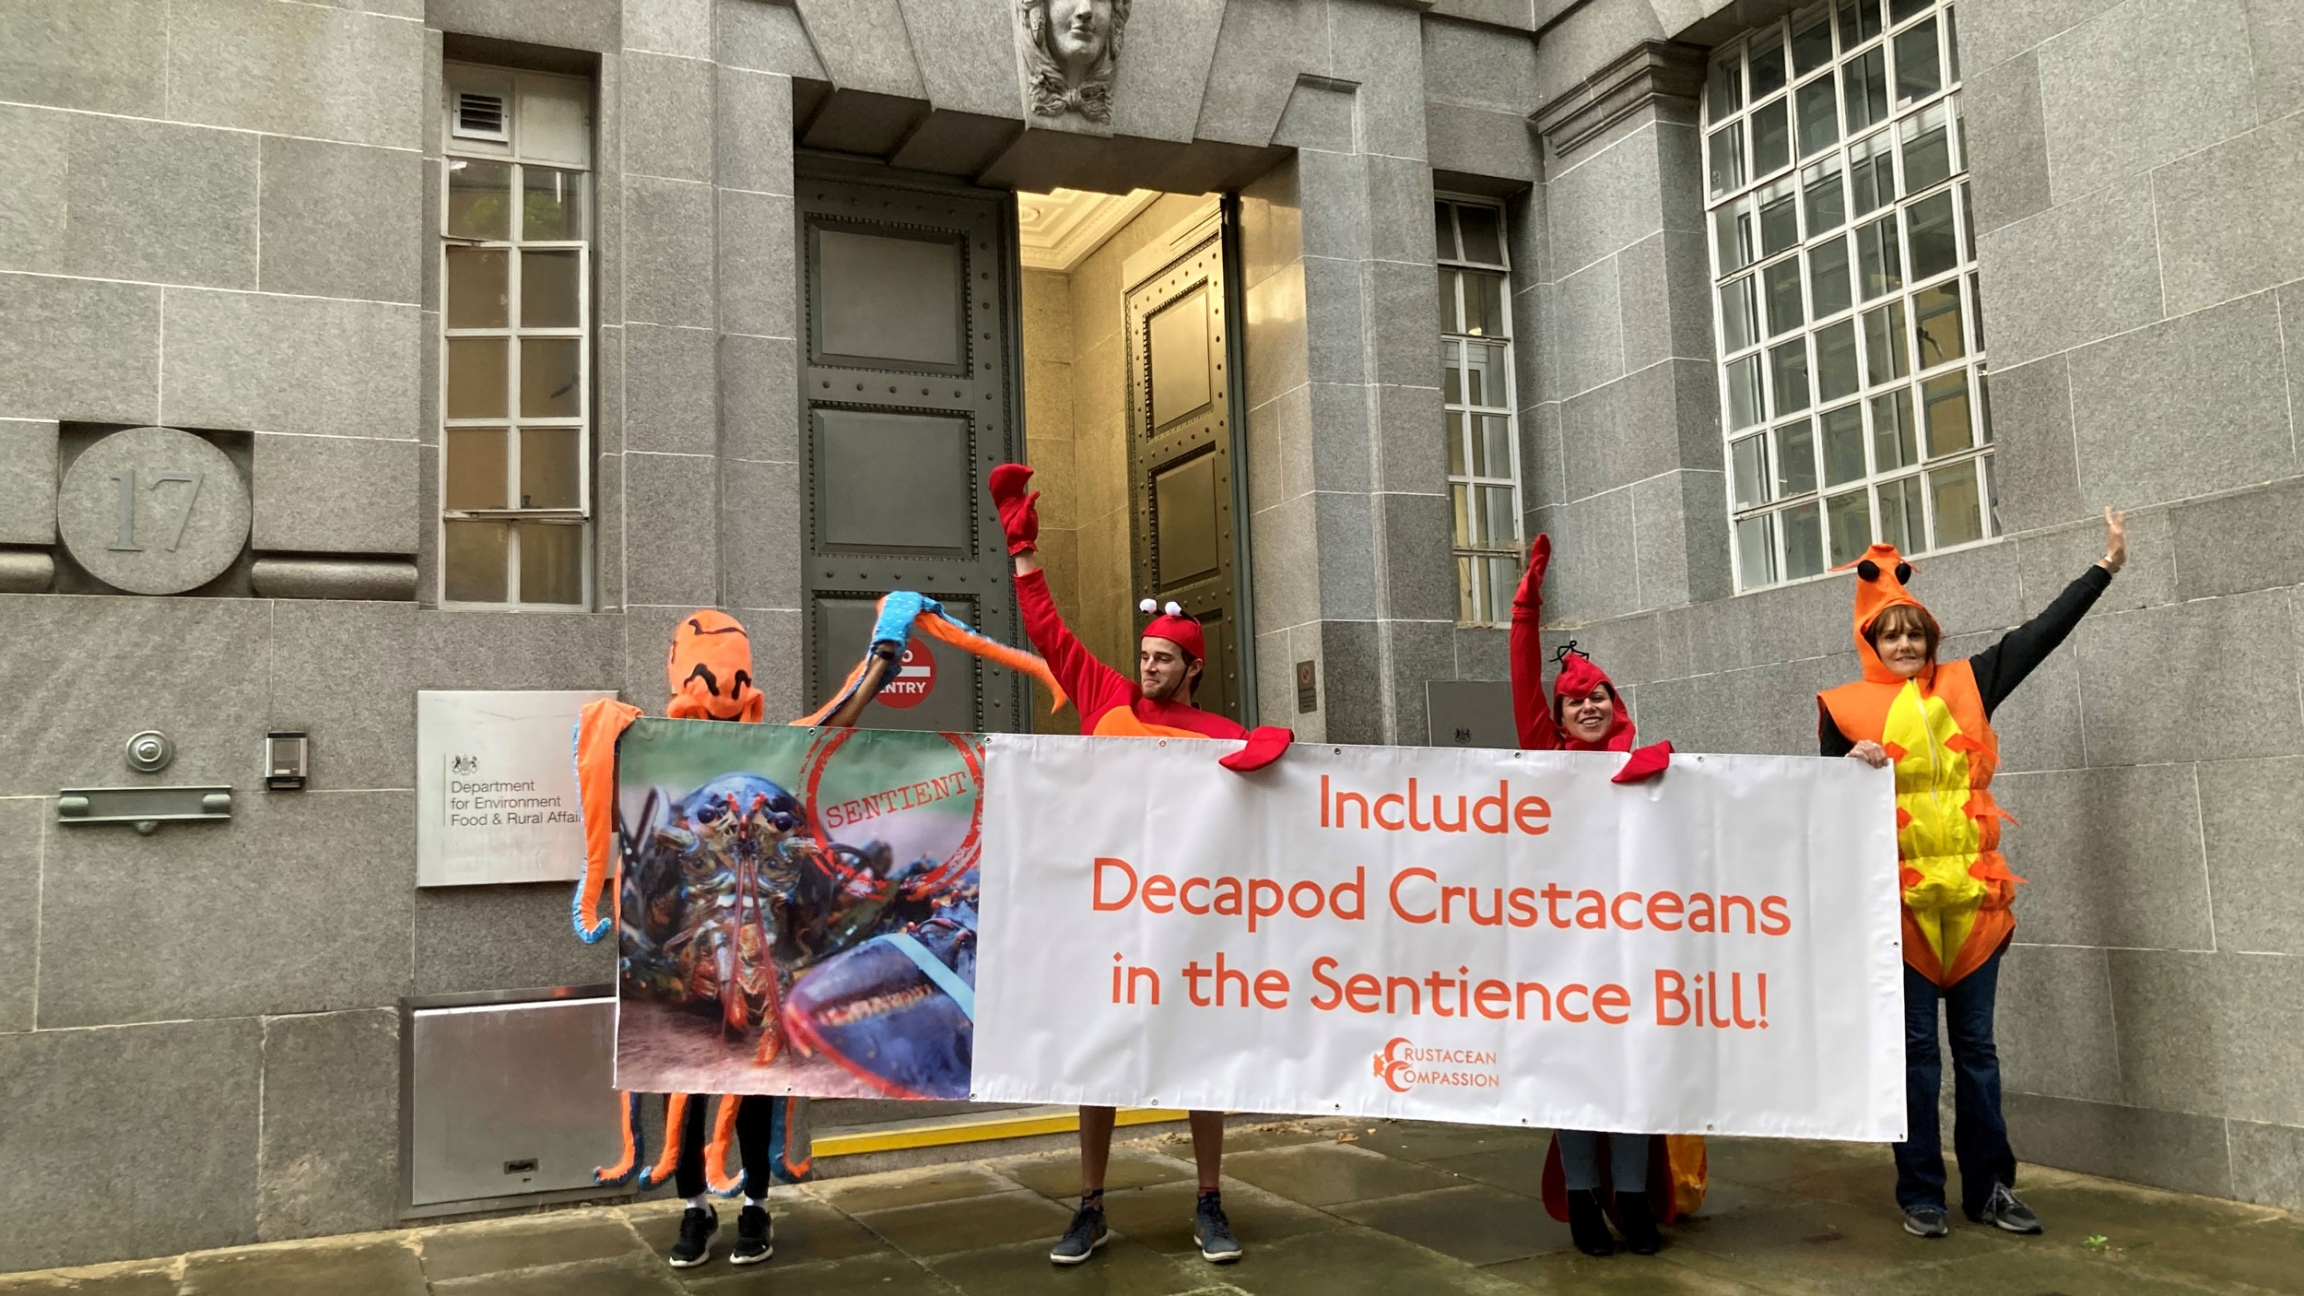 Activists dressed in shellfish costumes cheer with a banner.